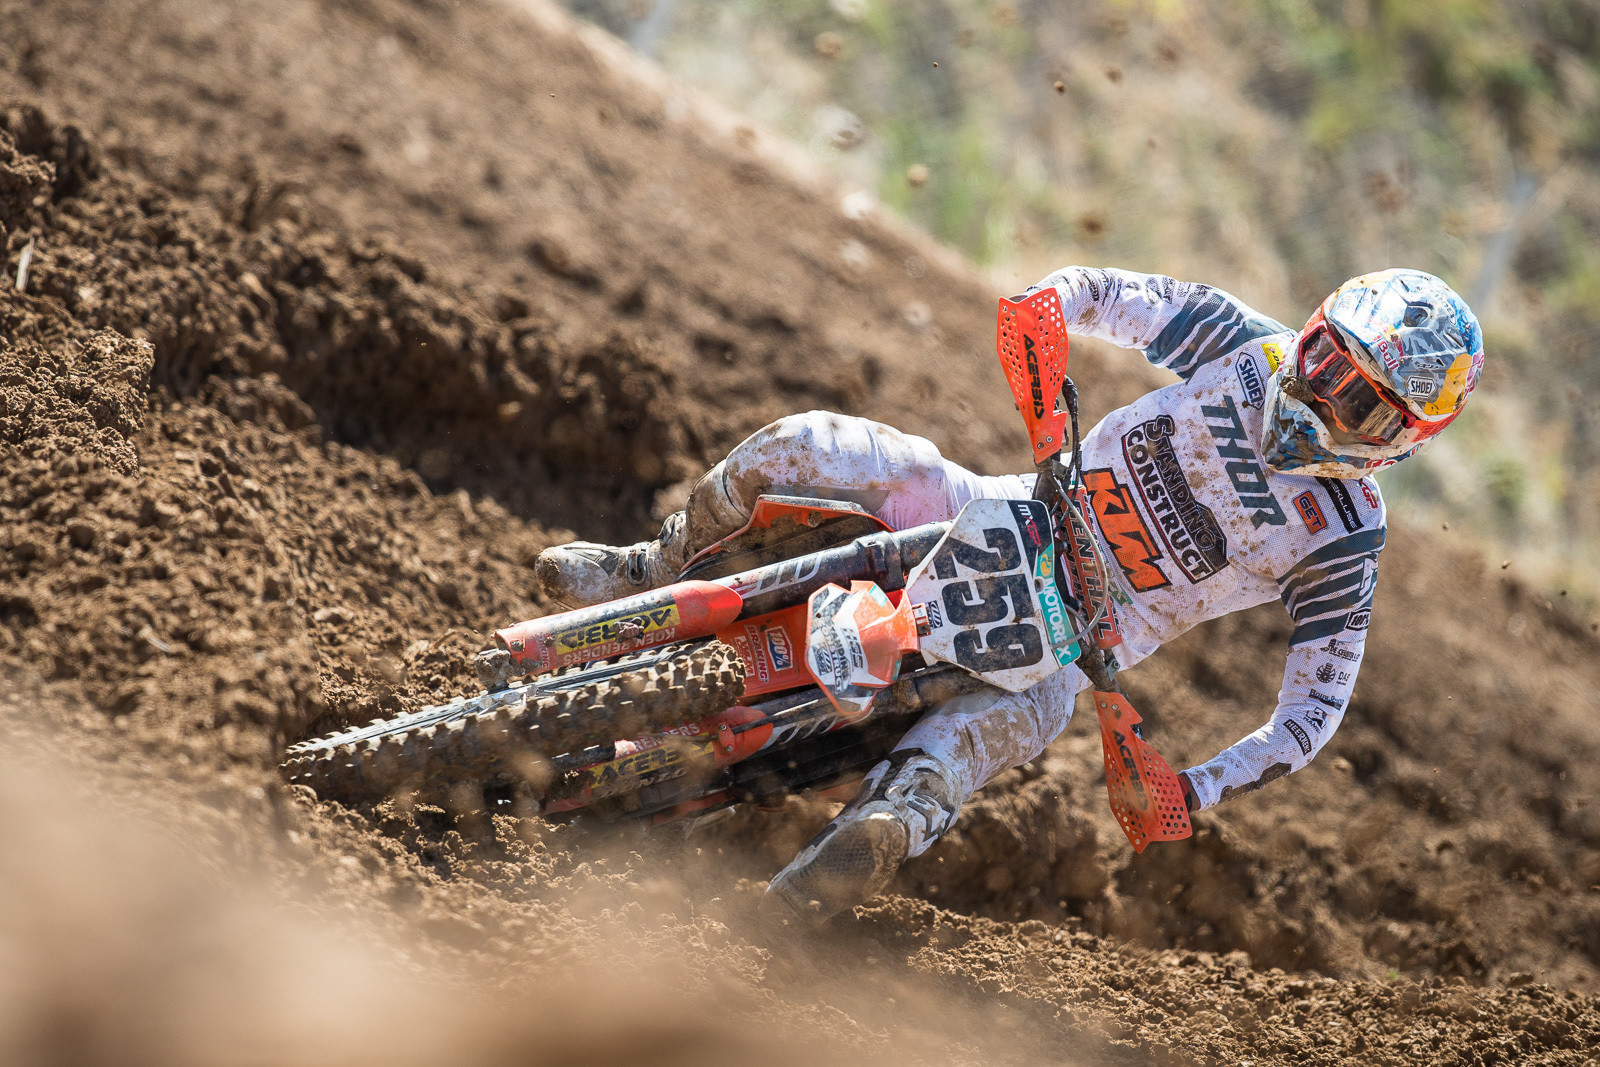 GasGas Expands Racing Program to Include Motocross, Rally, and Enduro